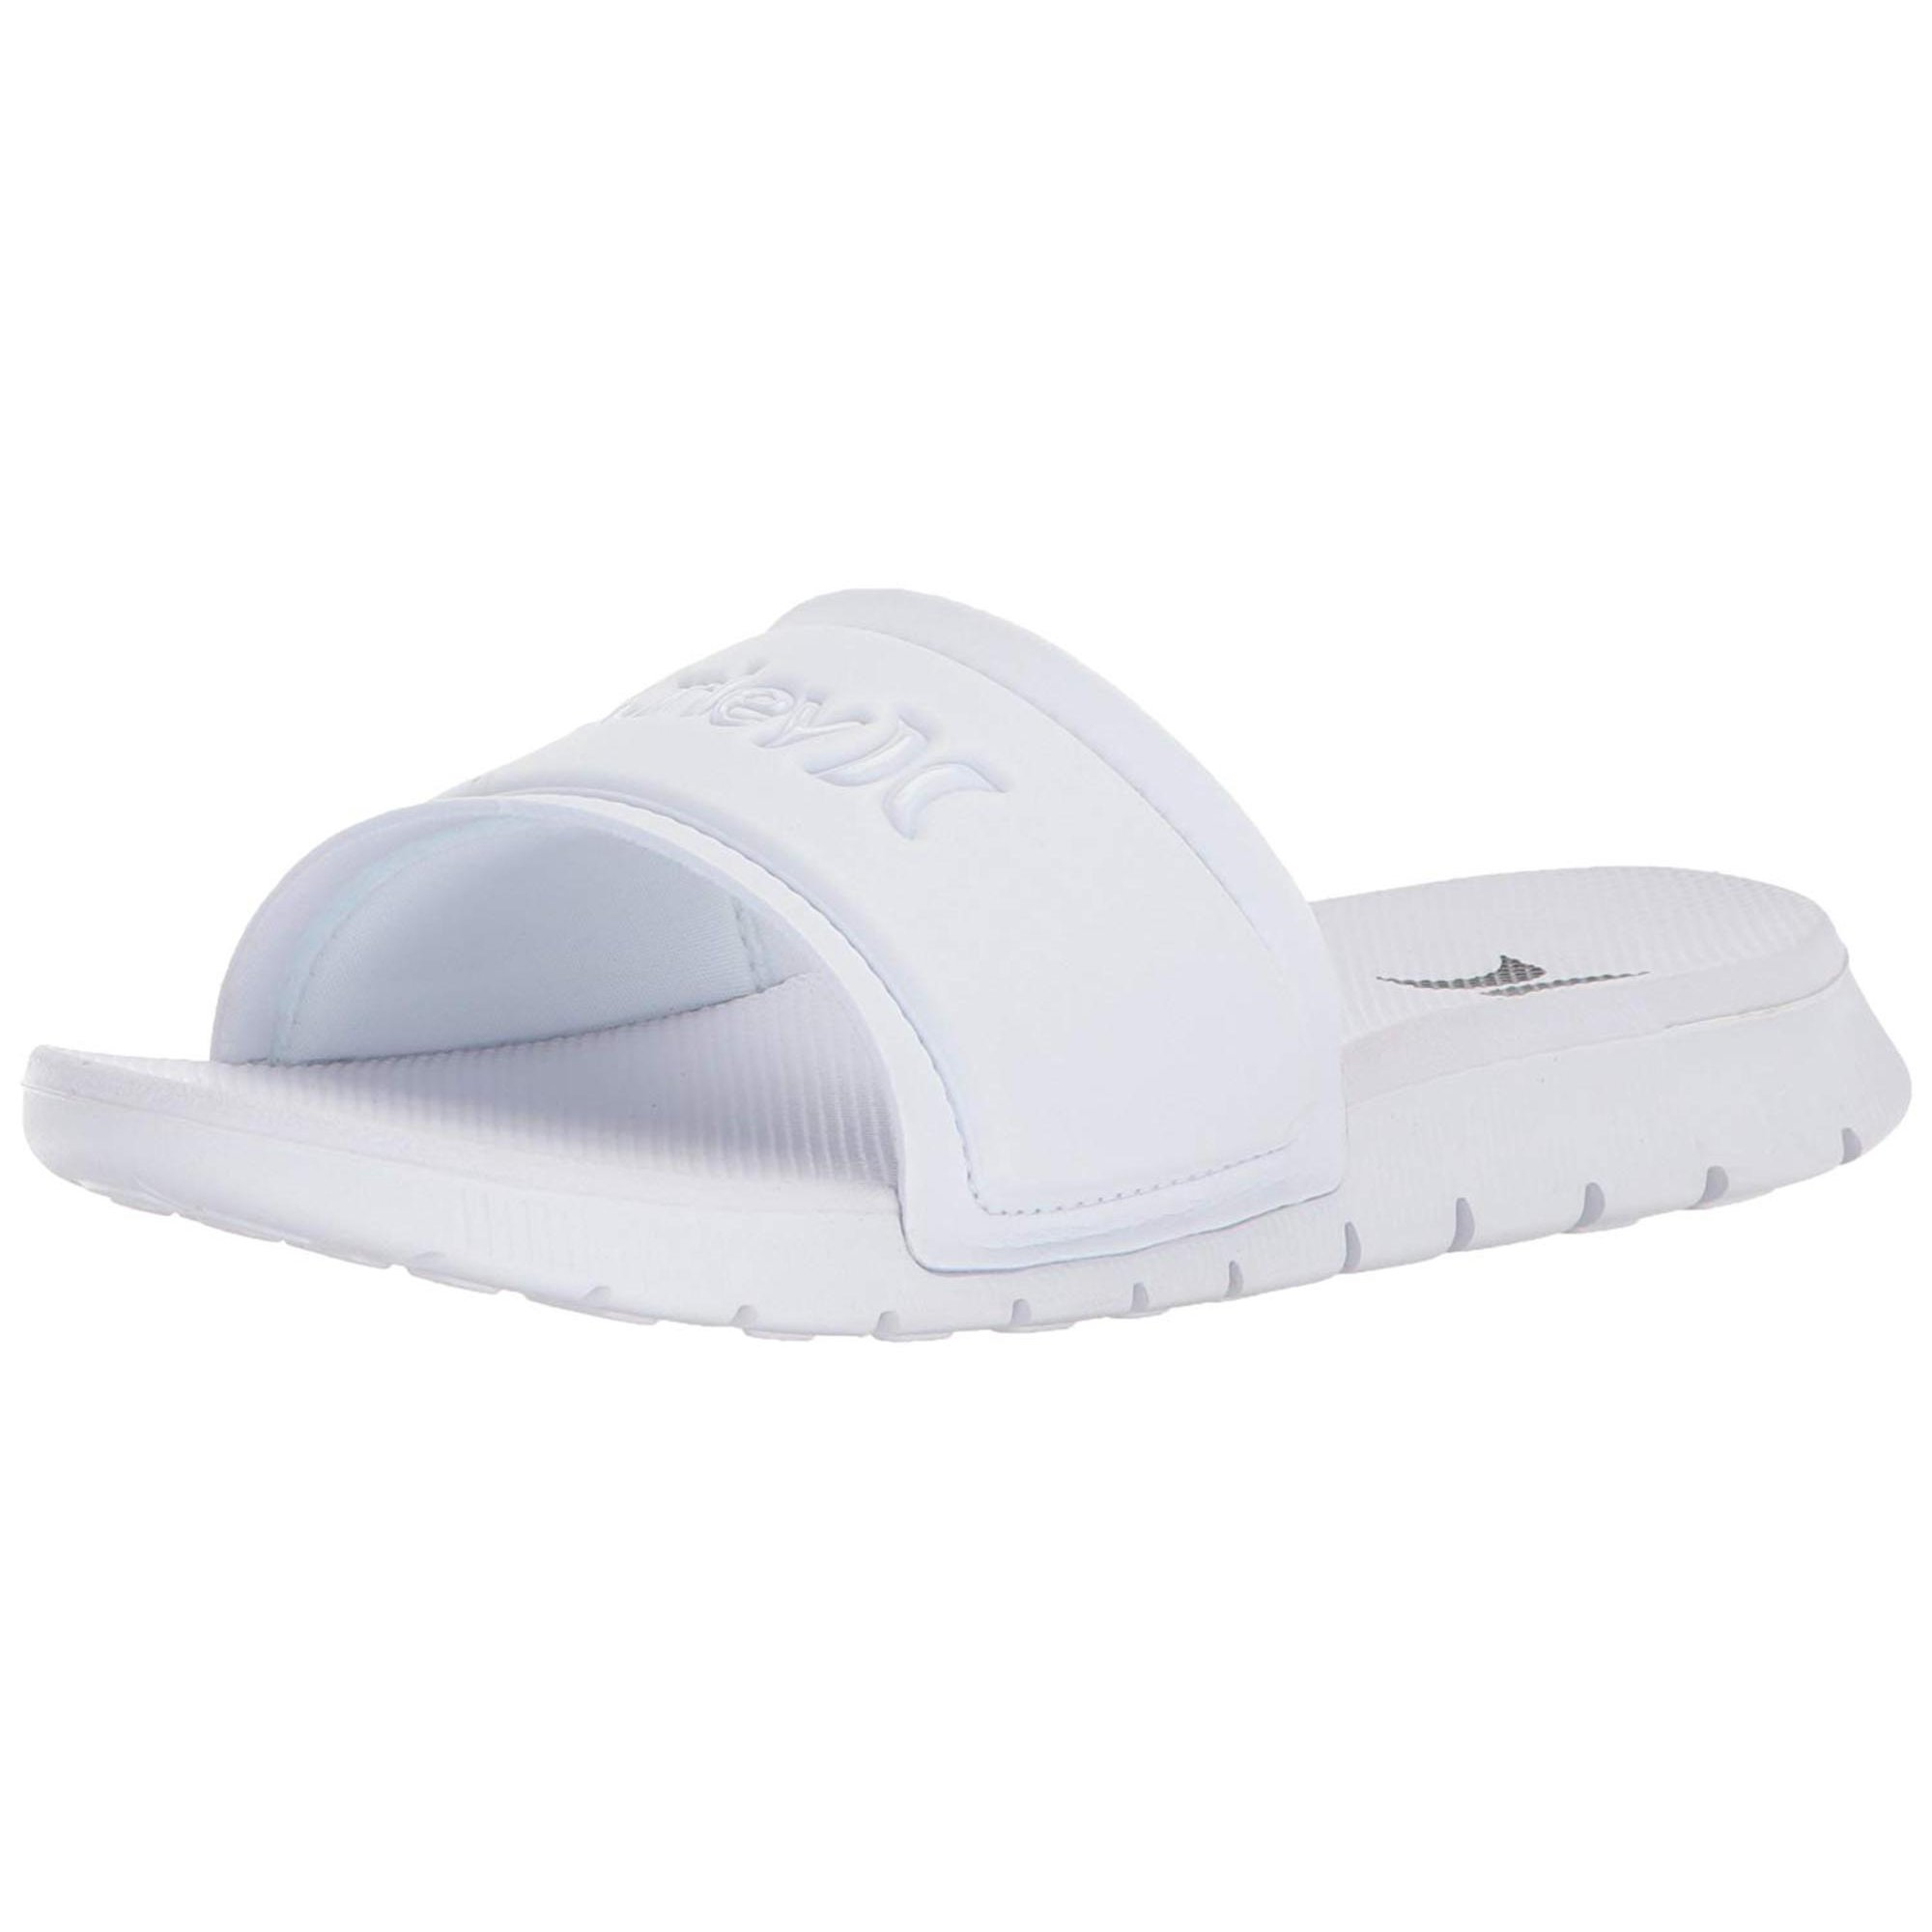 5fb4889c8345 Hurley Women s One and Only Fusion Slide Sandal